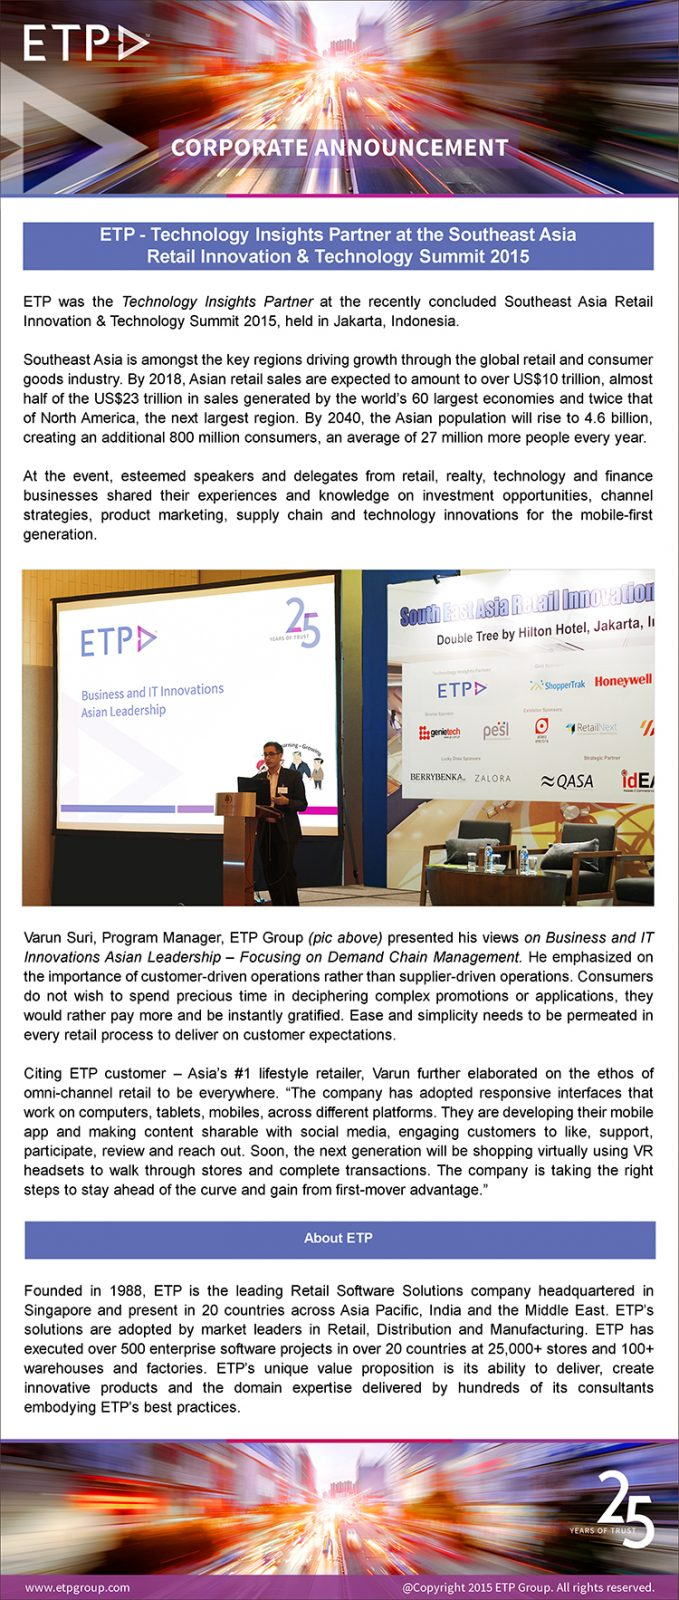 ETP - Technology Insights Partner at Southeast Asia Retail Innovation & Technology Summit 2015